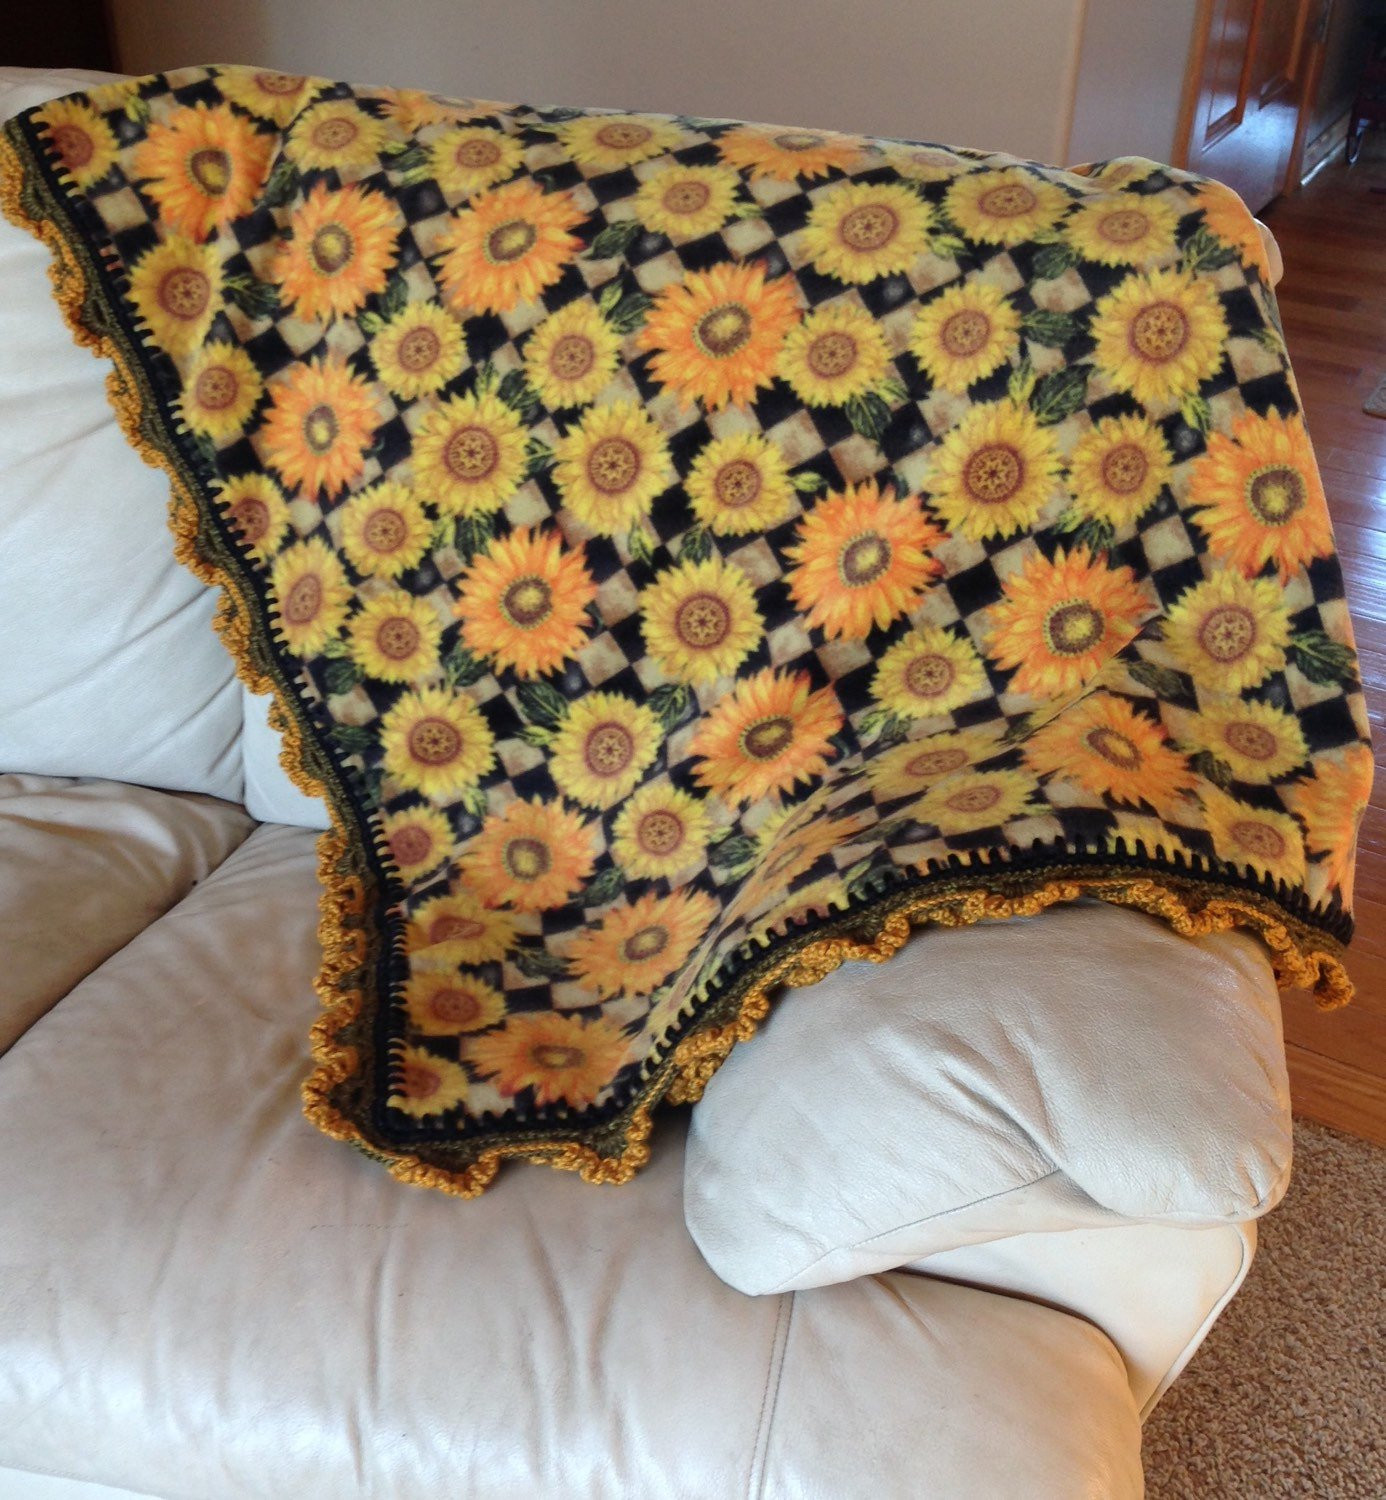 Lovely Sunflower Fleece Blanket W Sunflowers Crocheted Along the Sunflower Crochet Blanket Of Elegant Hand Crocheted Sunflower Granny Square Blanket Afghan Throw Sunflower Crochet Blanket